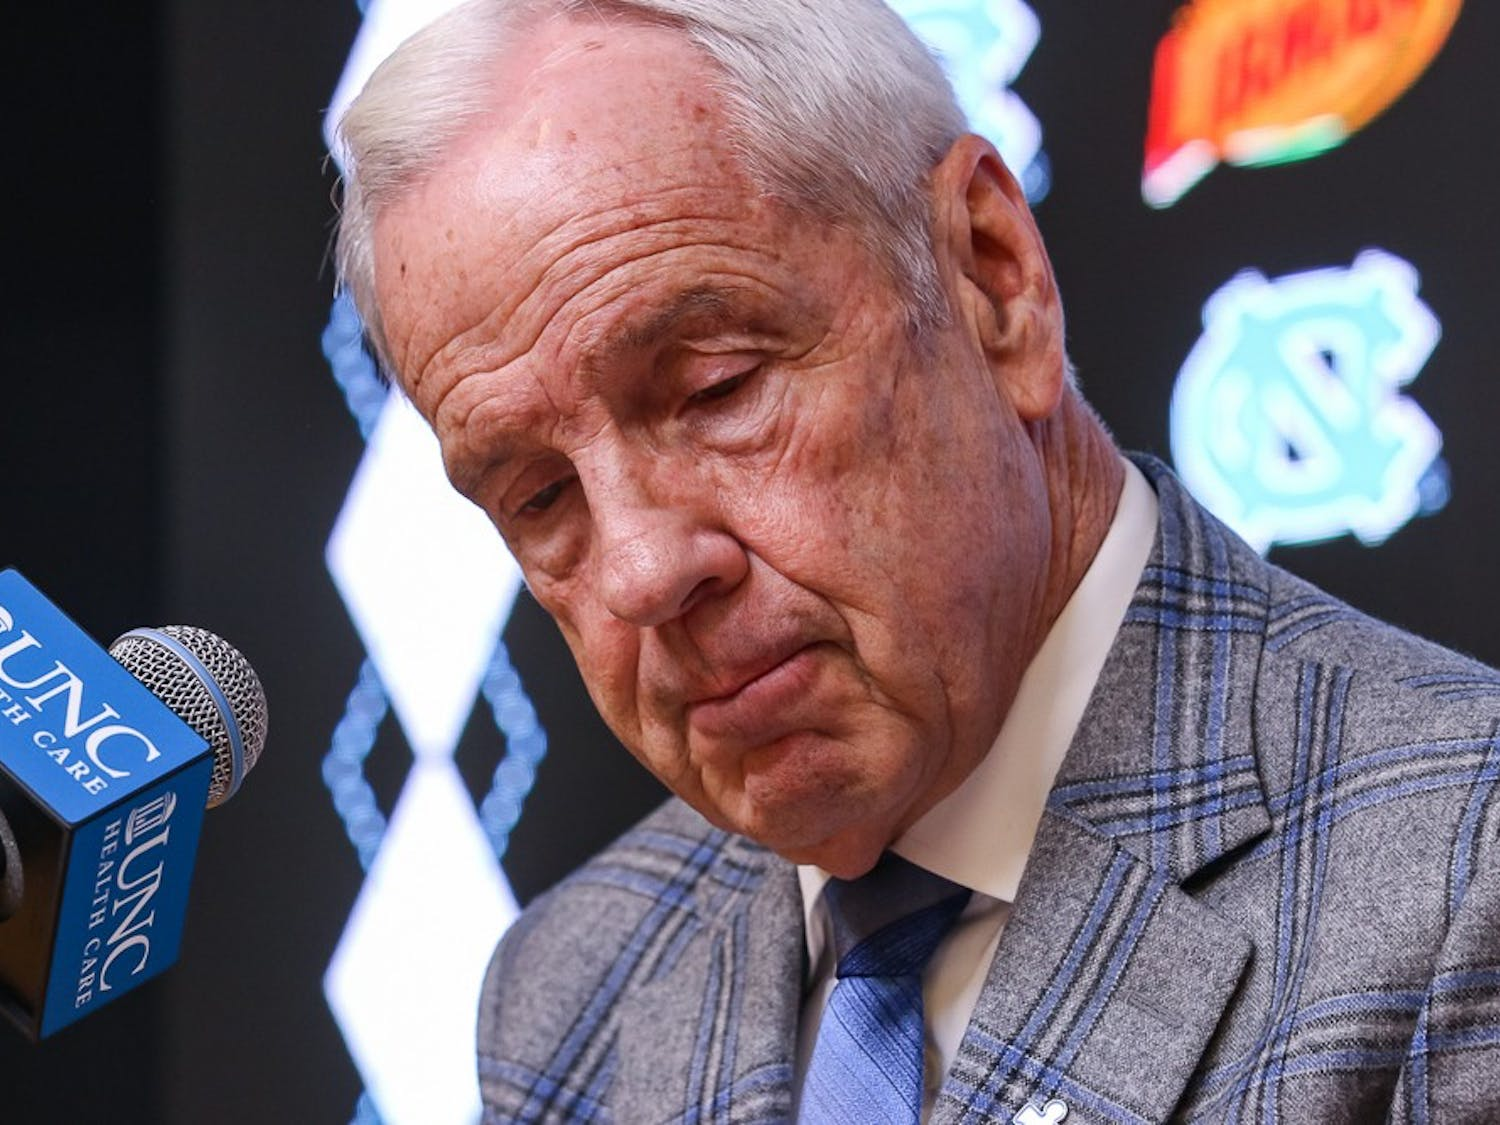 UNC's men's basketball coach Roy Williams speaks to press members after a game against Boston College in the Smith Center on Saturday, Feb. 1, 2020. UNC fell to Boston College by just one point in the last minutes of the game, making the final score 71-70.